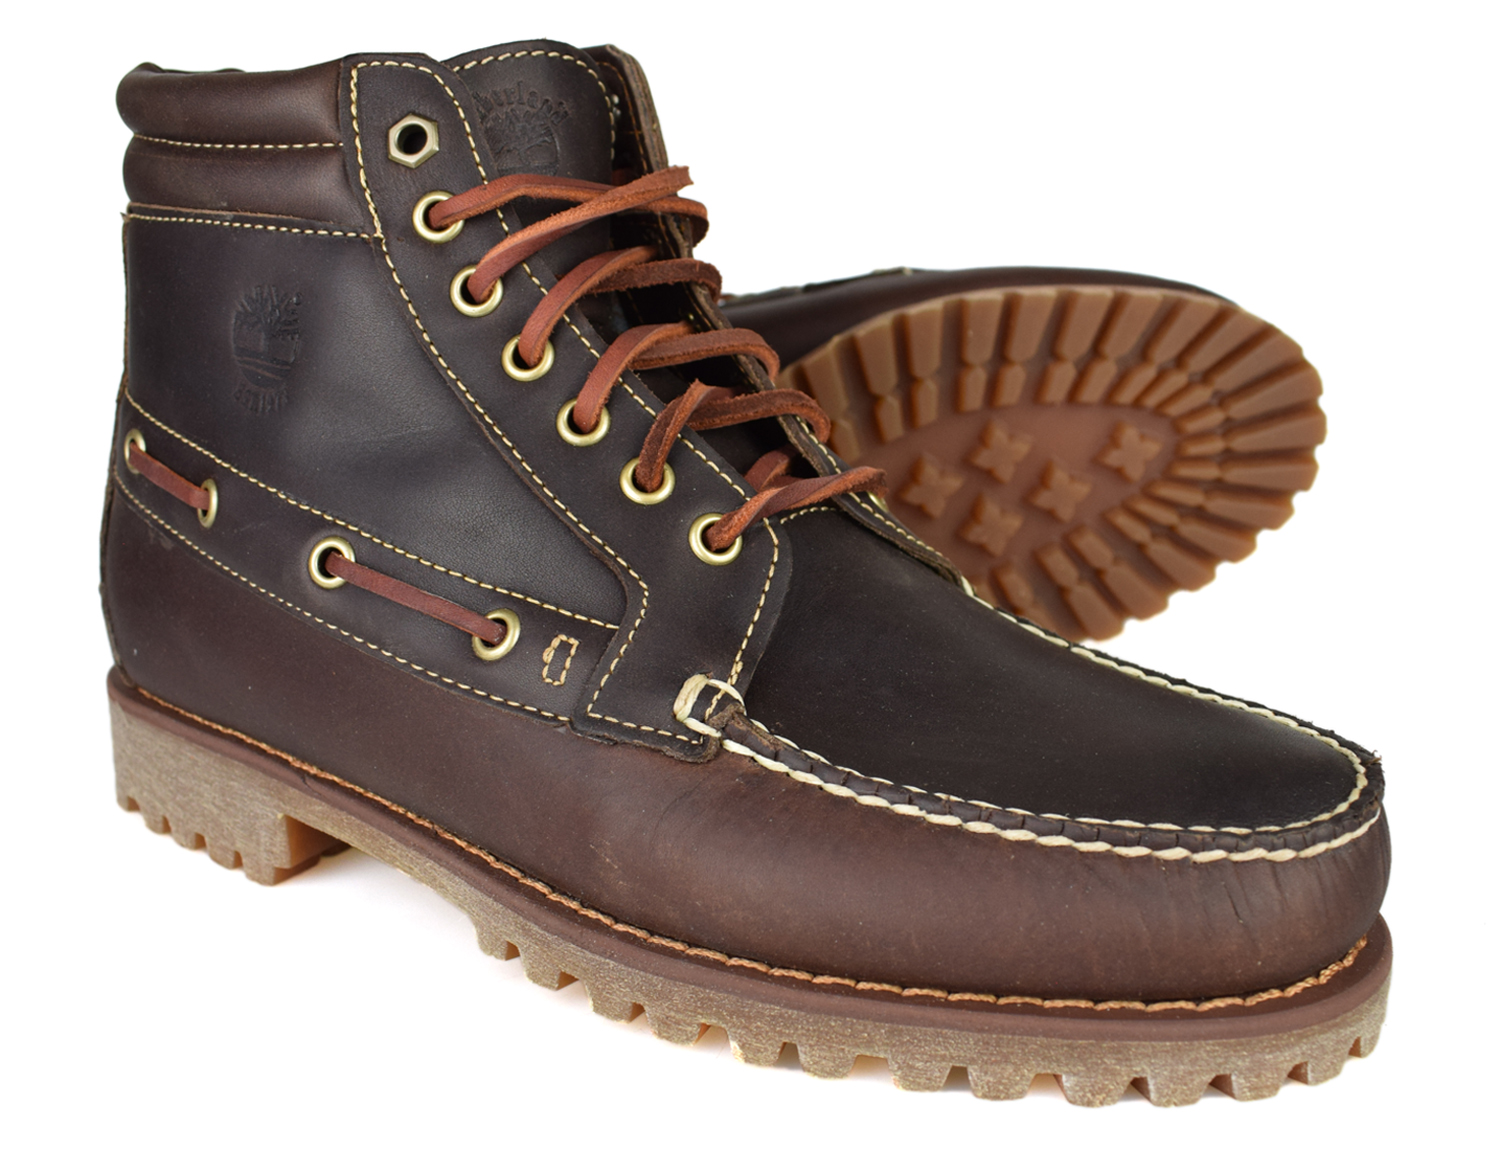 e275c1405c97 Details about Timberland Pendleton Brown Leather 7 Eye Chukka Boots A13F1  Free UK P P!